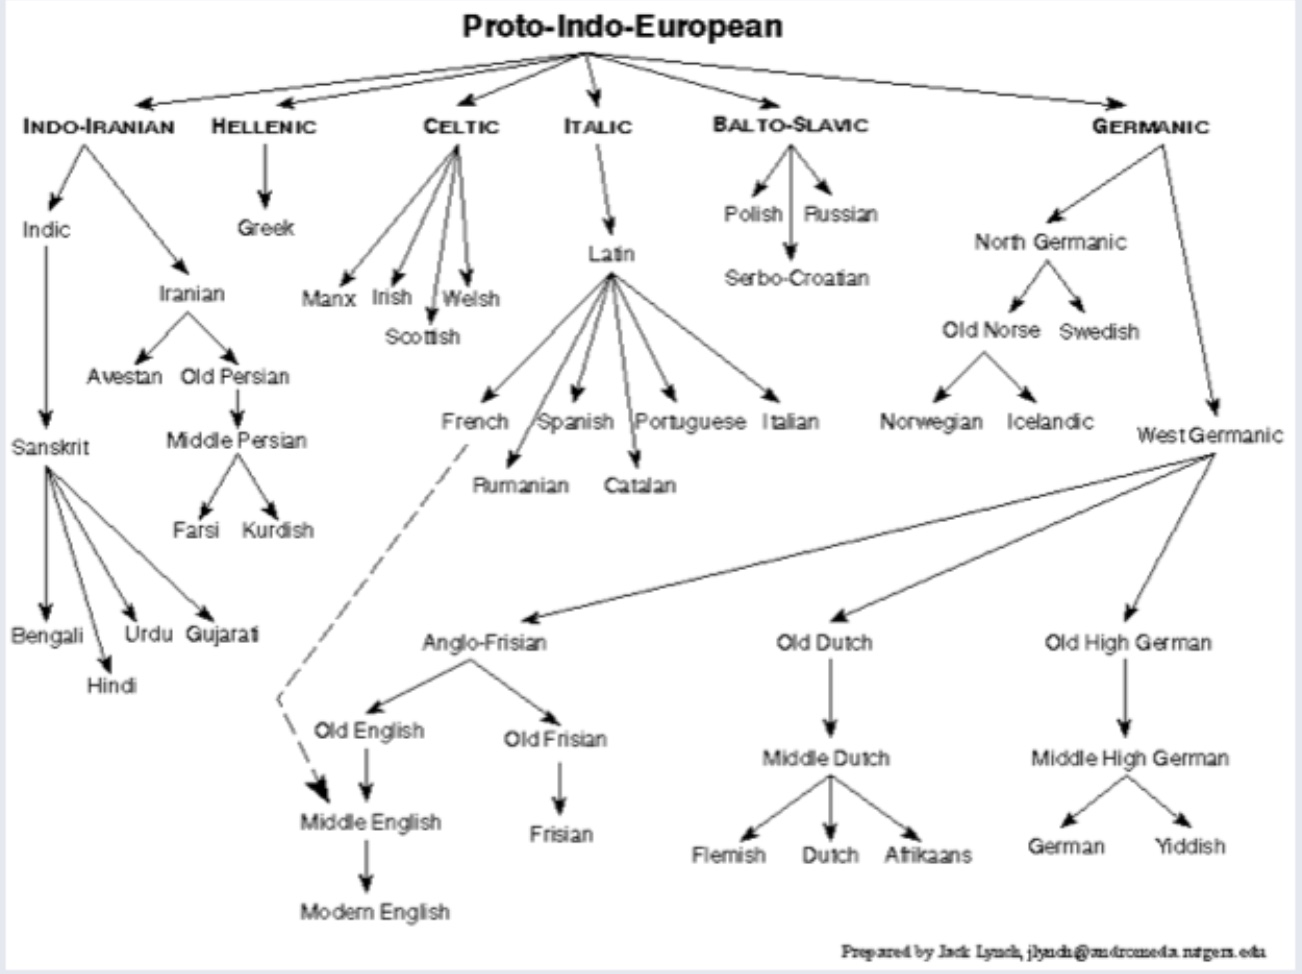 Proto-Indo-European Family | Chart showing the relationship between some languages in the Indo-European Family. Note the location of Sanskrit. | Author: Jack Lynch | Source: Rutgers | License: © Jack Lynch. Used with permission.